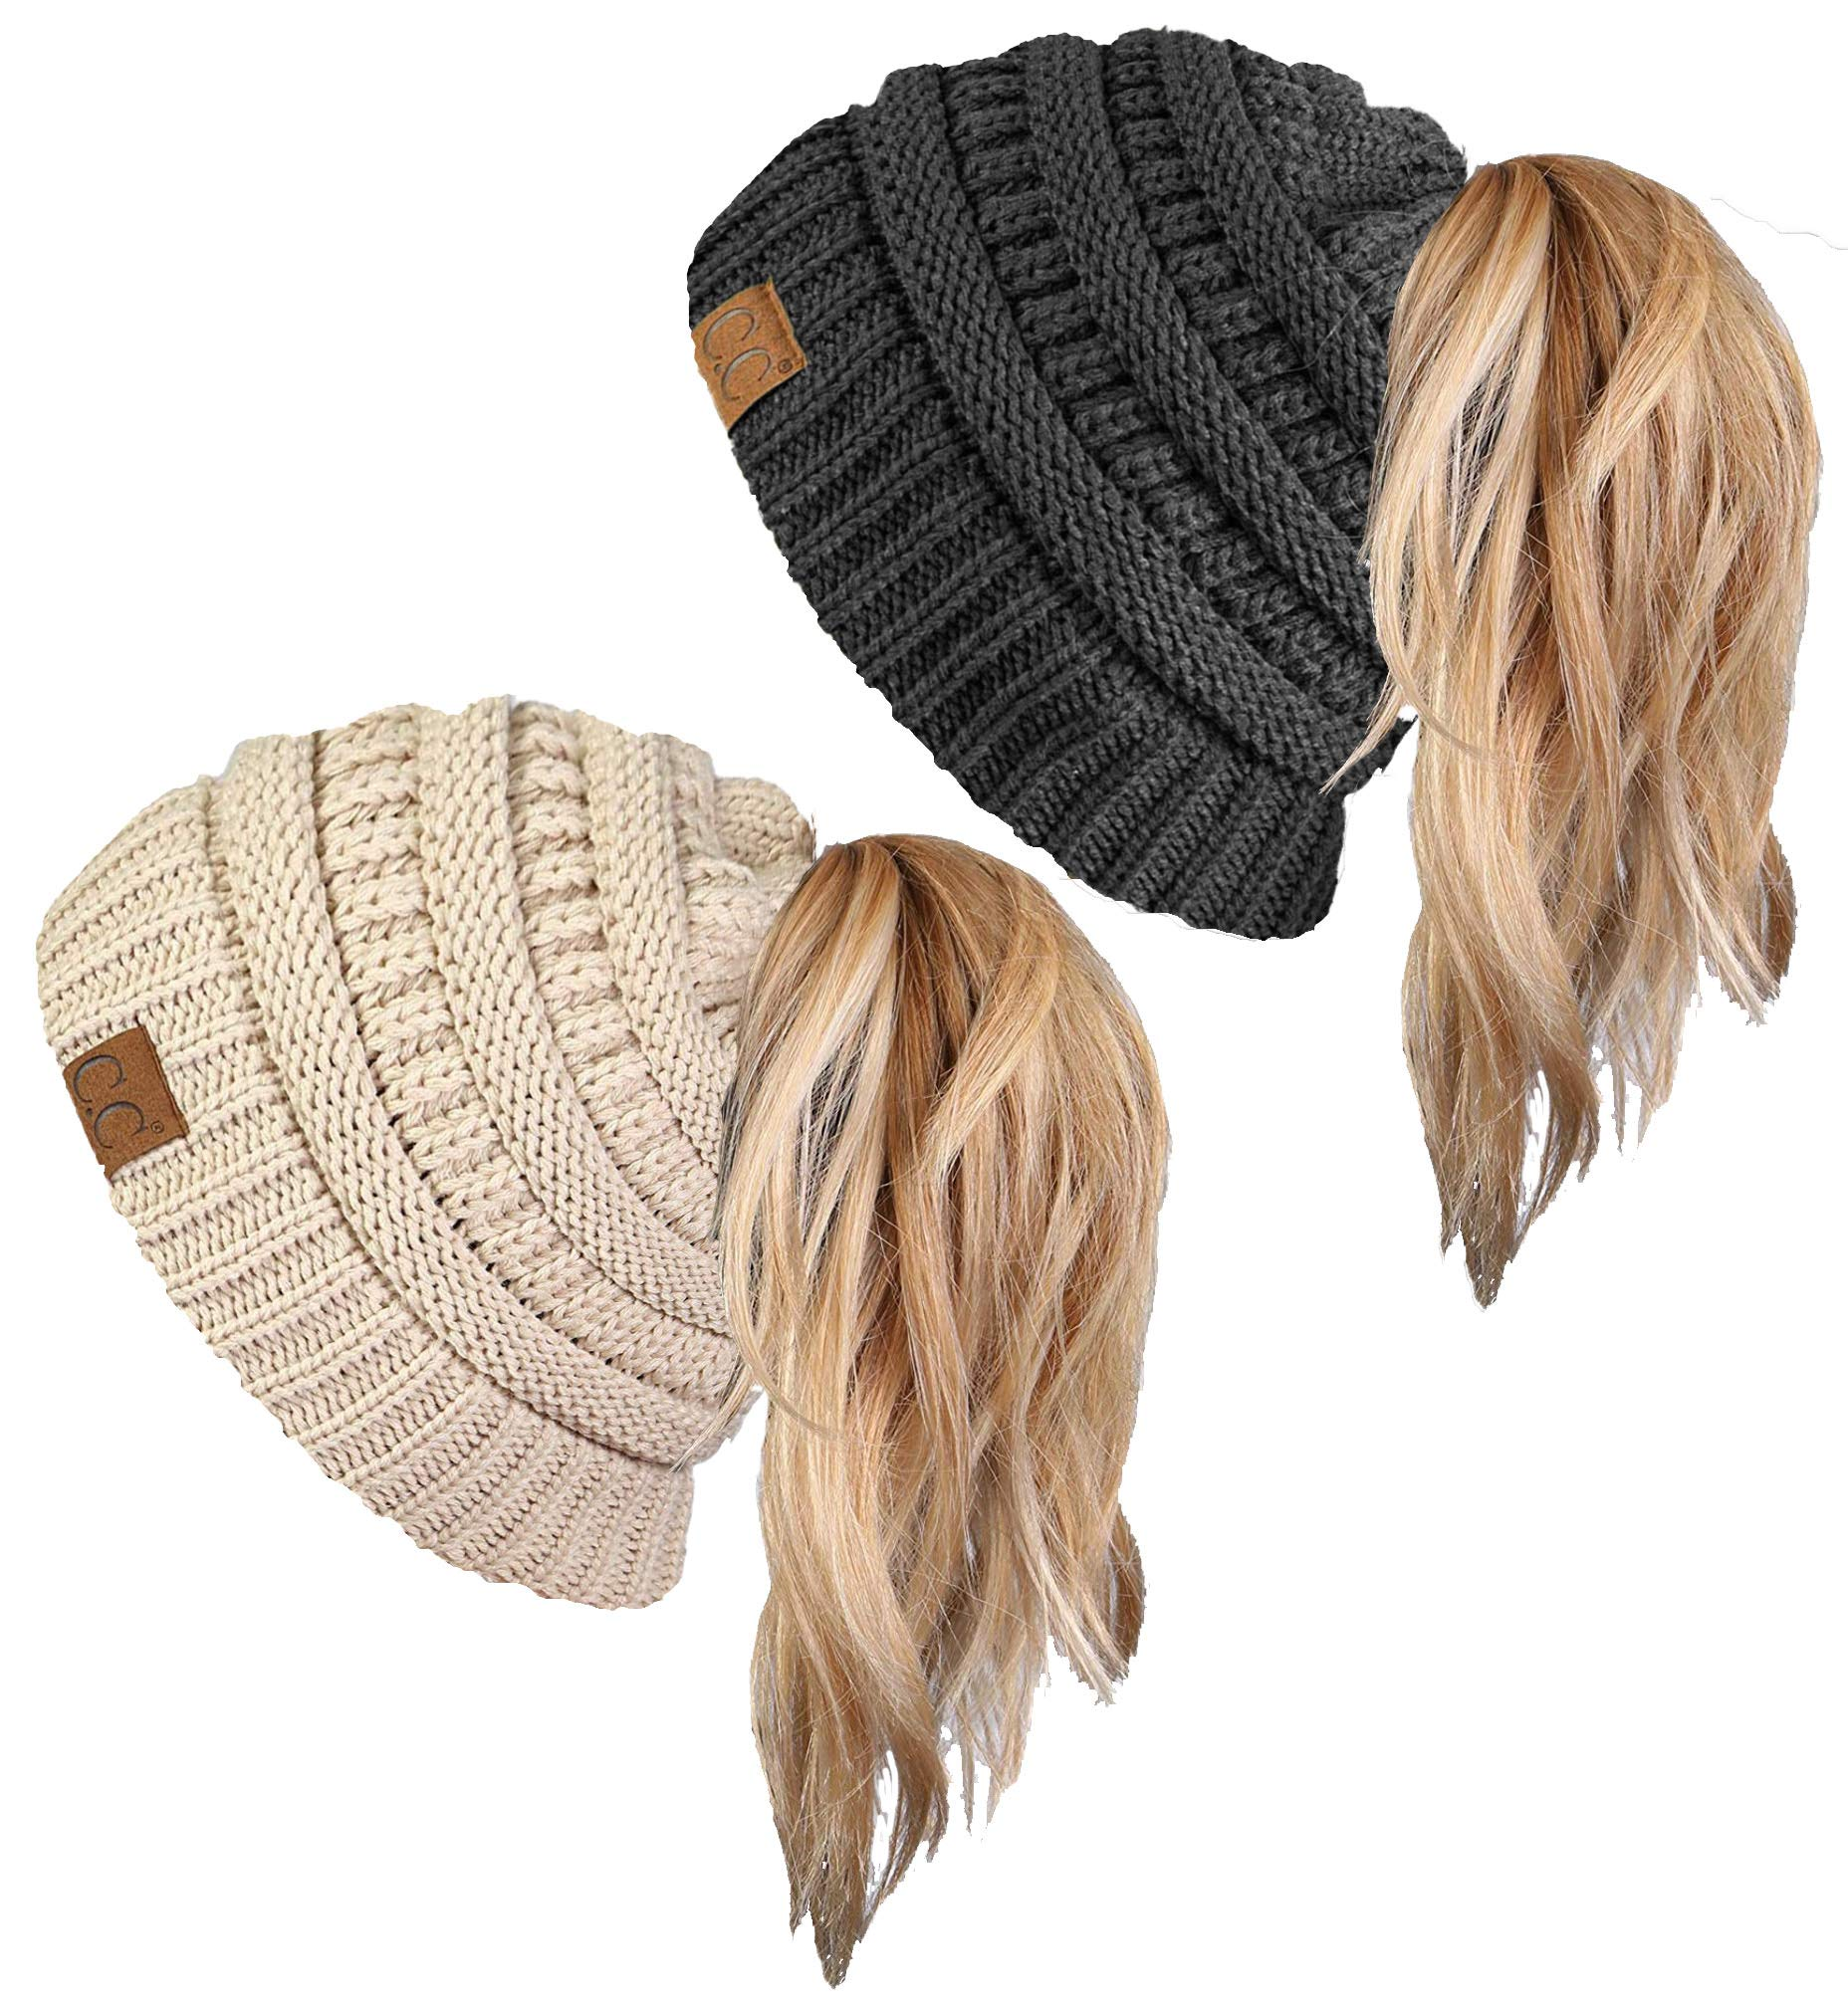 Funky Junque BT-6020a-2-6070 Solid Messy Bun Beanie Tail Bundle - 1 Beige, 1 Charcoal (2 Pack)